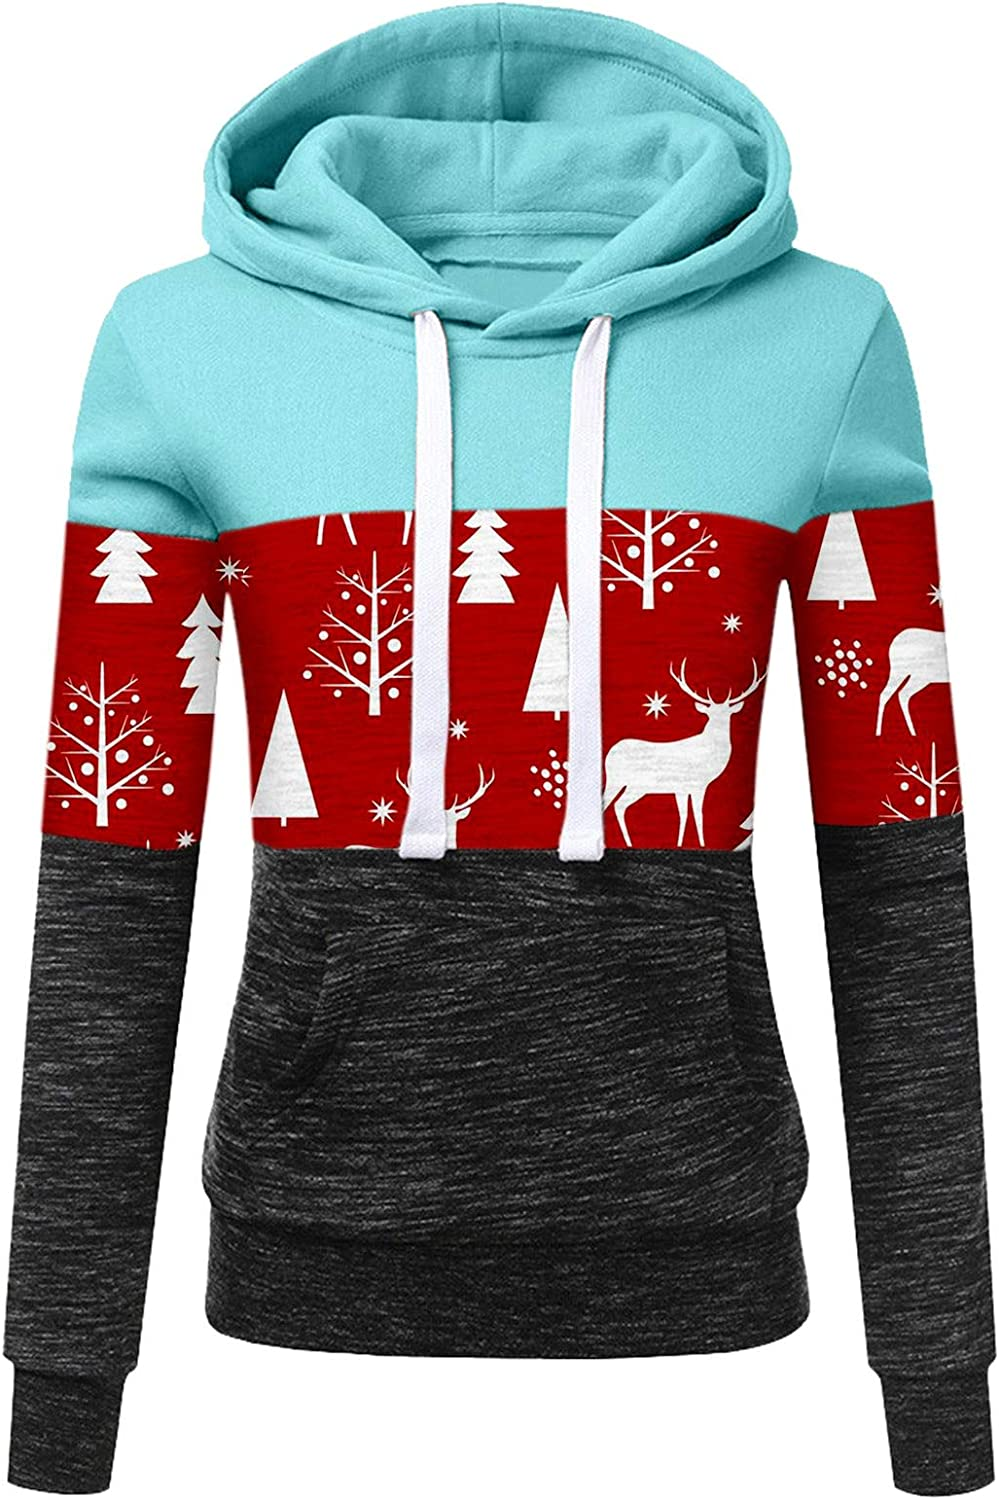 Hotkey Women's Fashion 25% OFF Christmas Special price for a limited time Hoodies Sleeve Sweatshirt Long